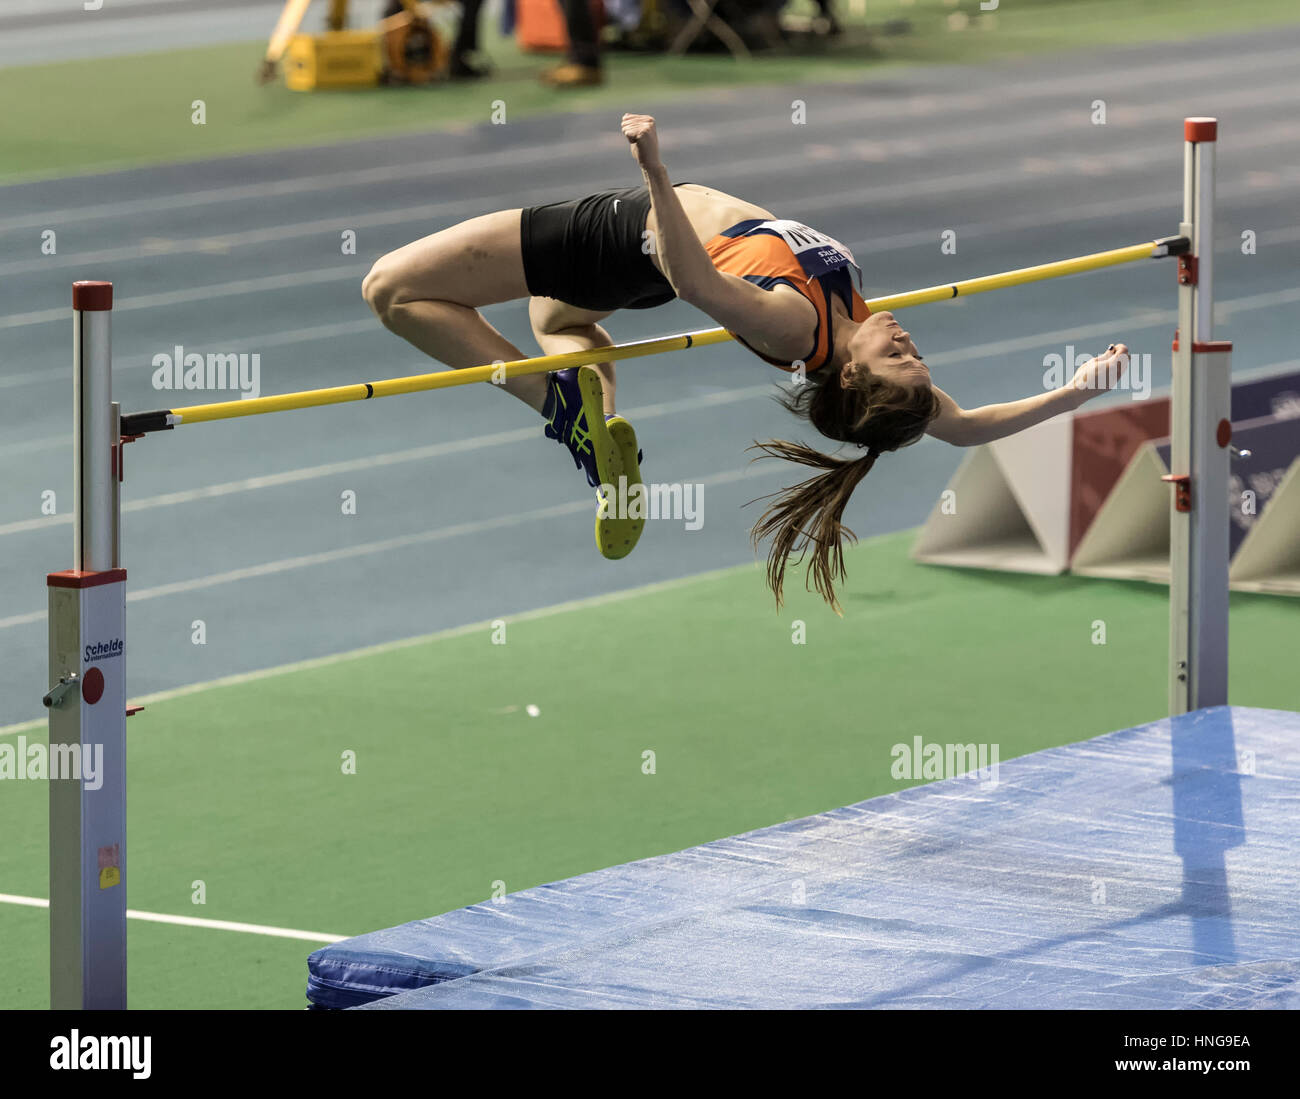 Philippa Rogan competes in the Womans high jump final. - Stock Image